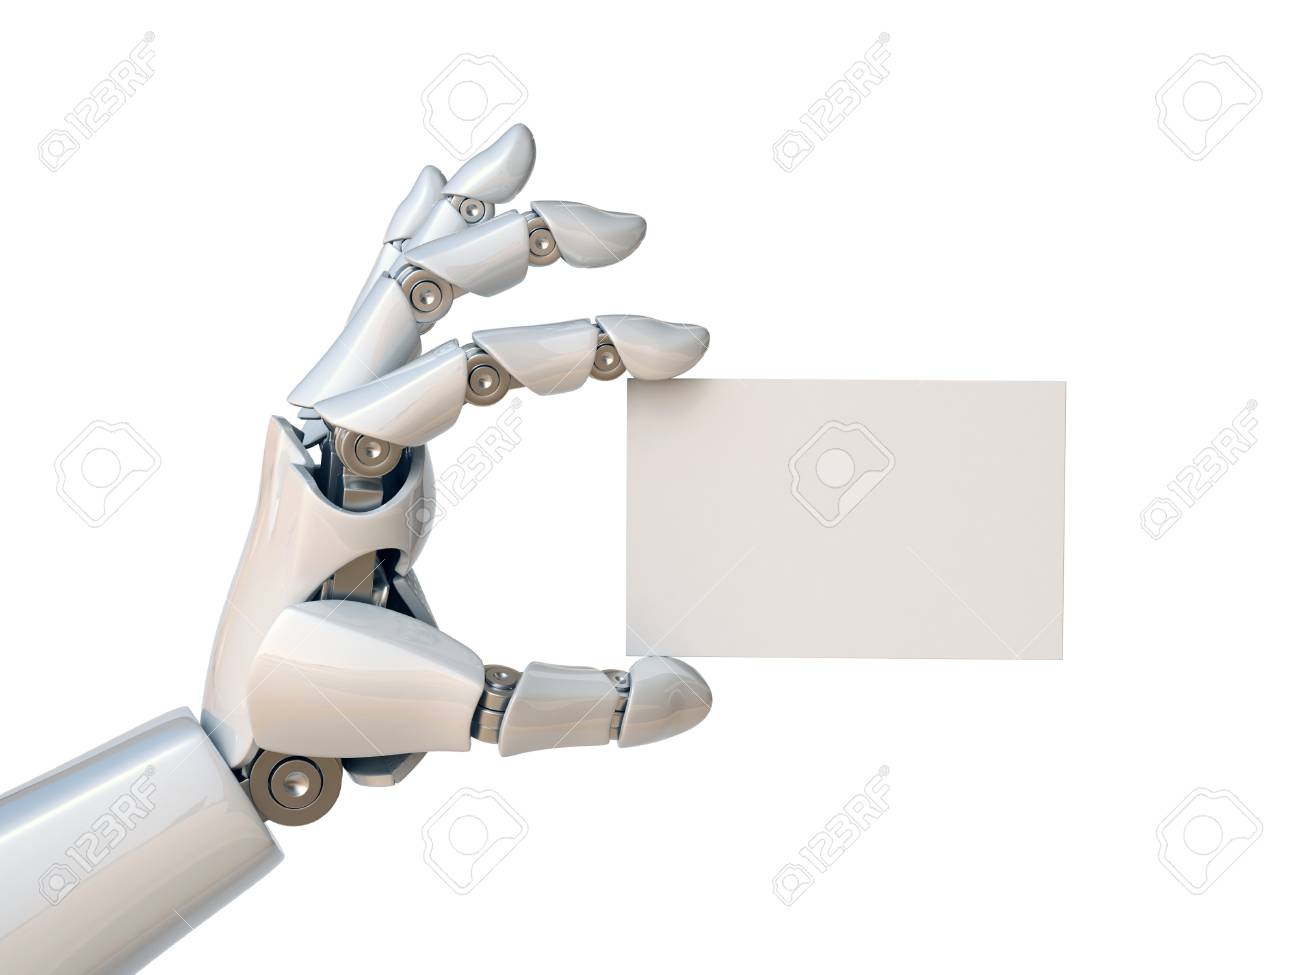 Robot hand holding a blank business card 3d rendering - 88979885